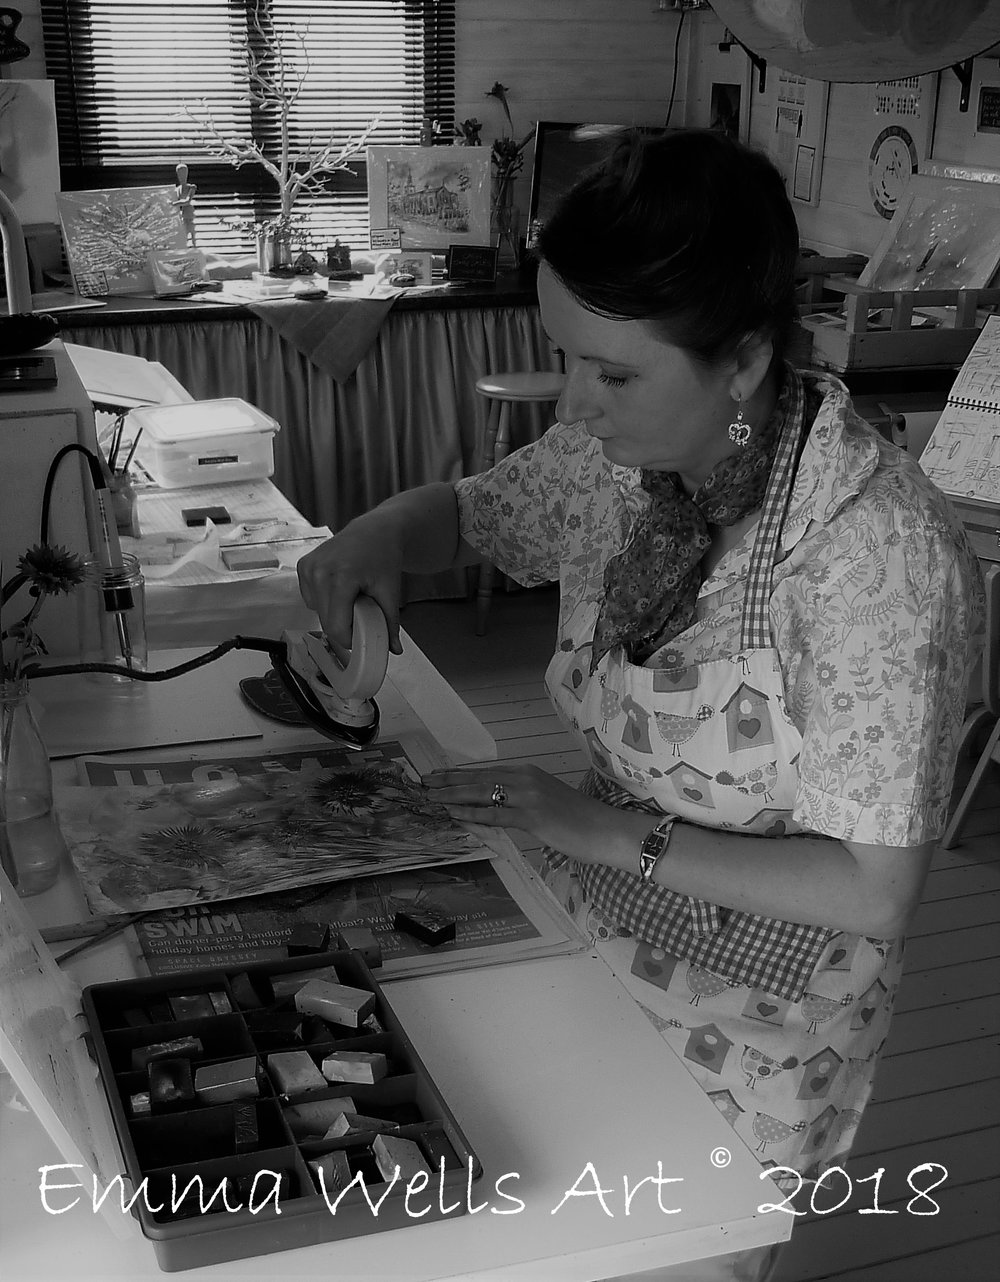 Emma Wells creating encaustic wax art in her studio.